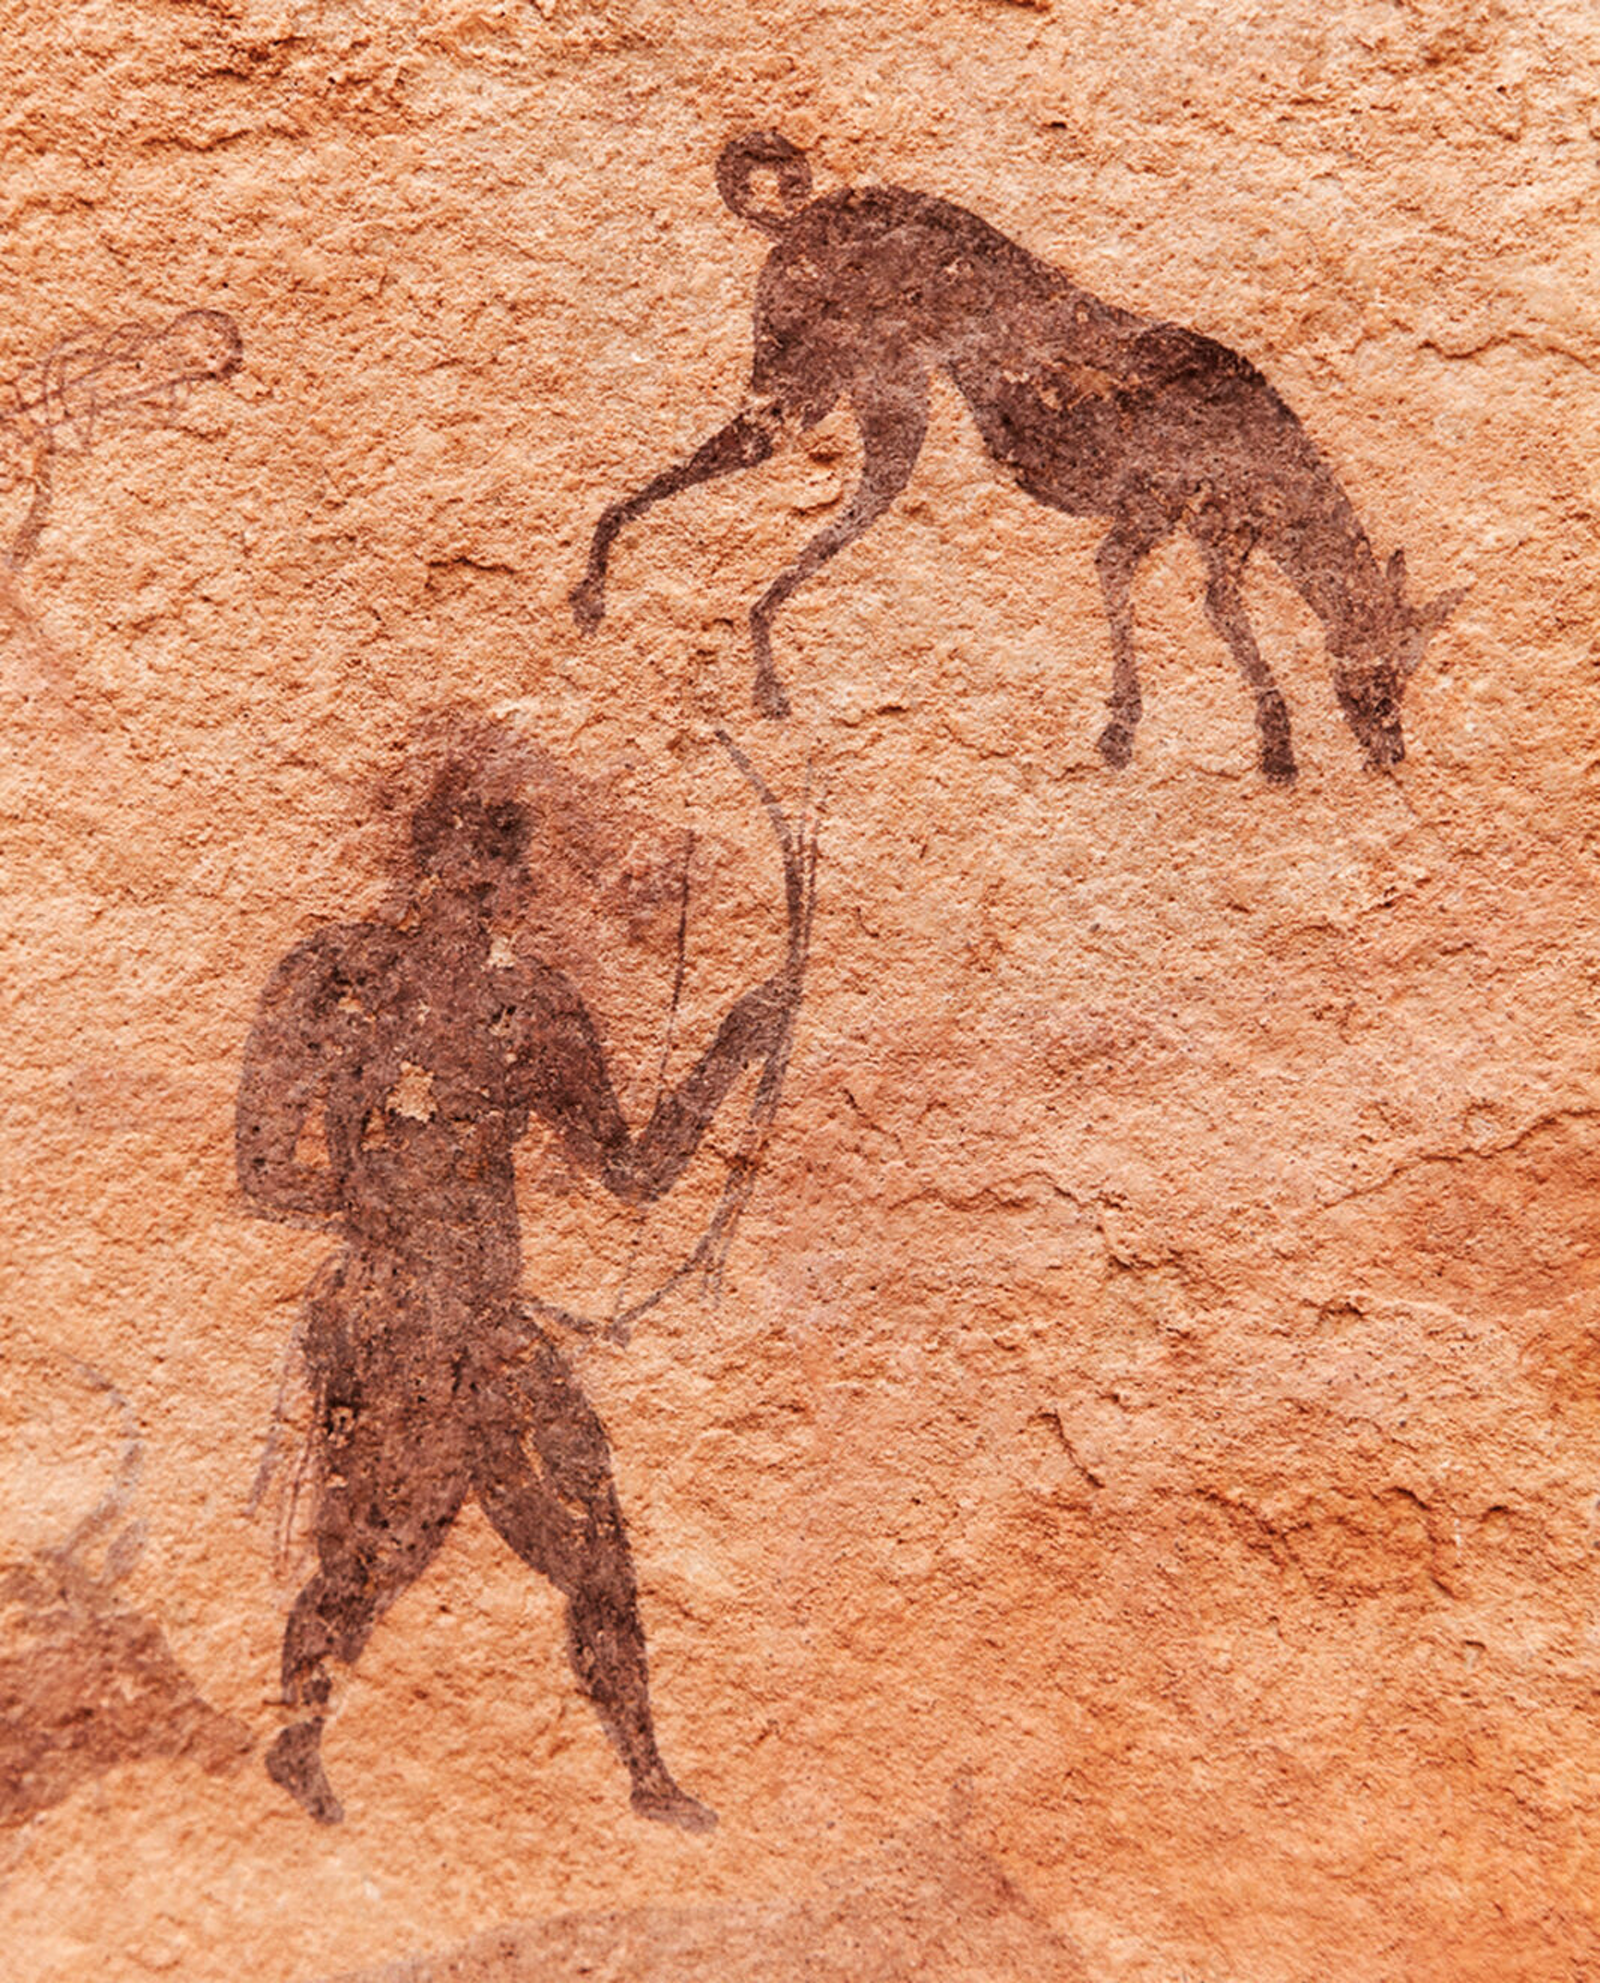 Figure 2. A 7,000-year-old rock painting from Tassili N'Ajjer, Algeria, depicting humans hunting with dogs that show physical traits that differentiate them from wolves and other wild canids.